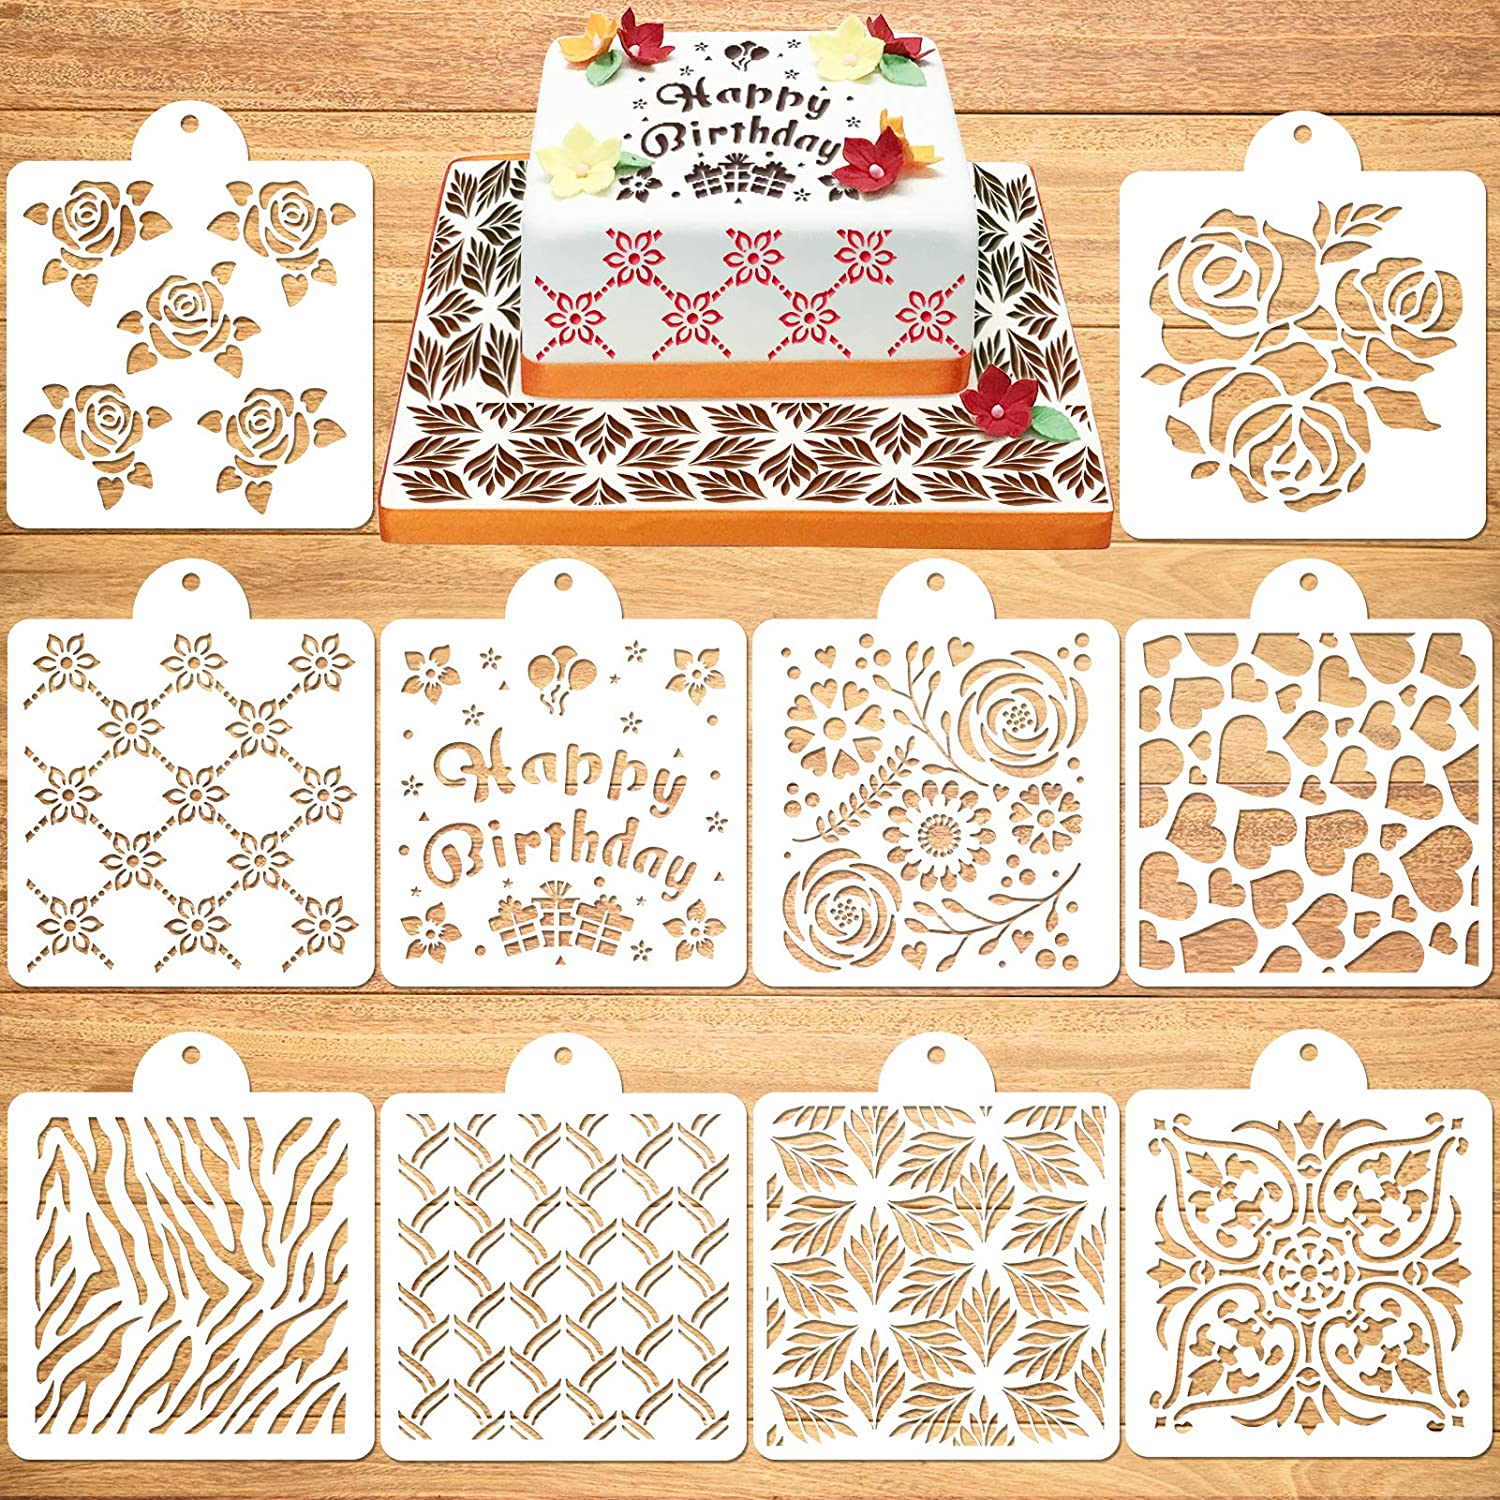 Konsait 10Pack Cake Stencil Templates Decoration,Reusable Cookies Baking Painting Mold Tools Cake Decorating Stencils for Food,Wall,Costume,Dessert,Coffee Decor Molds DIY Craft Wedding Birthday Party